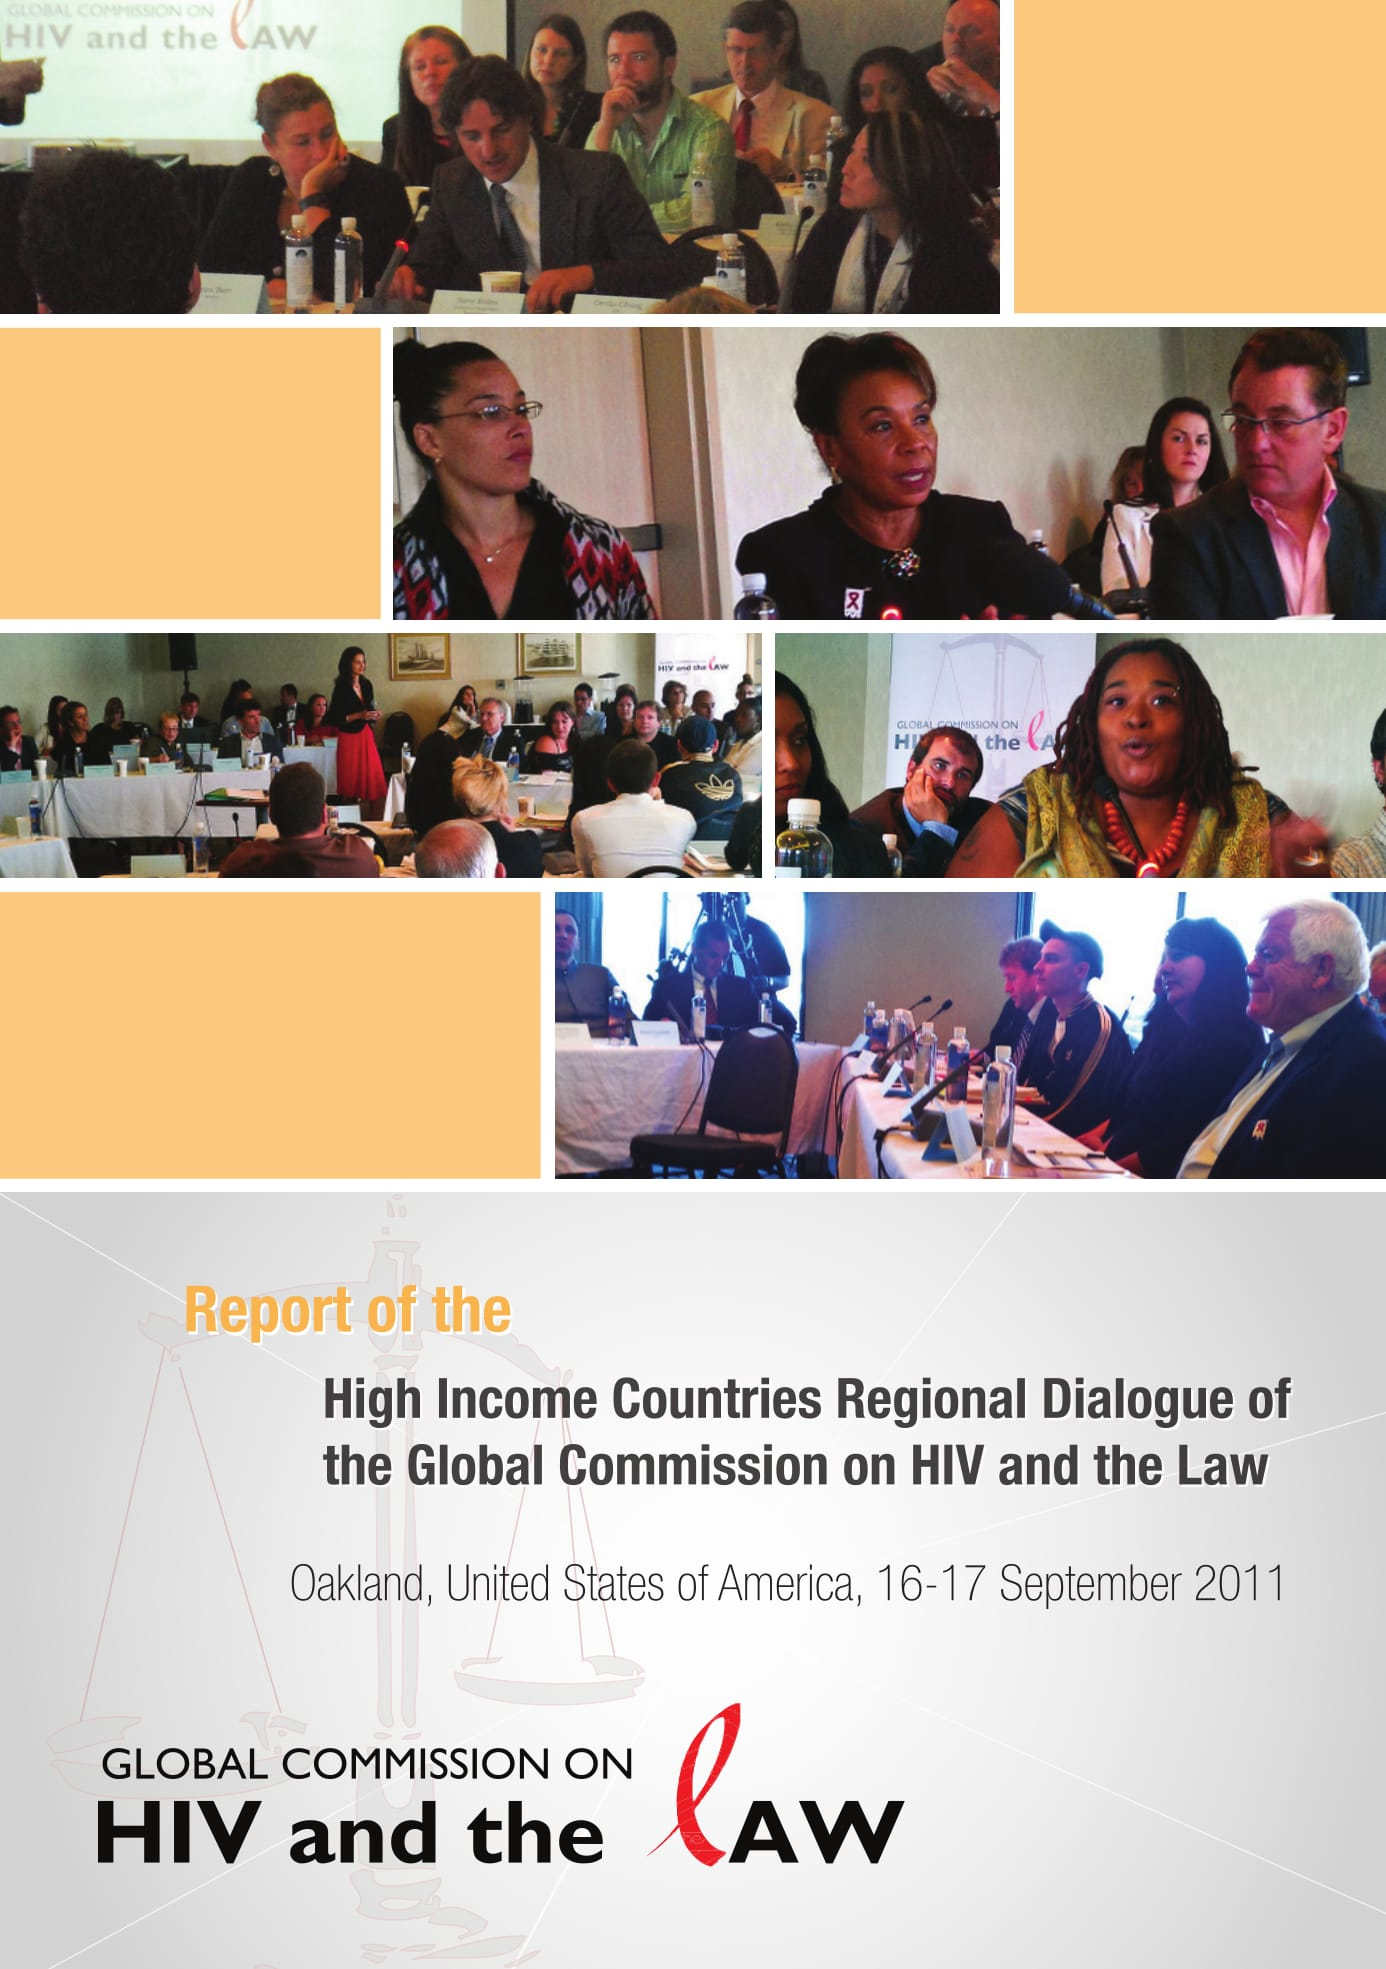 High Income Countries Dialogue Report